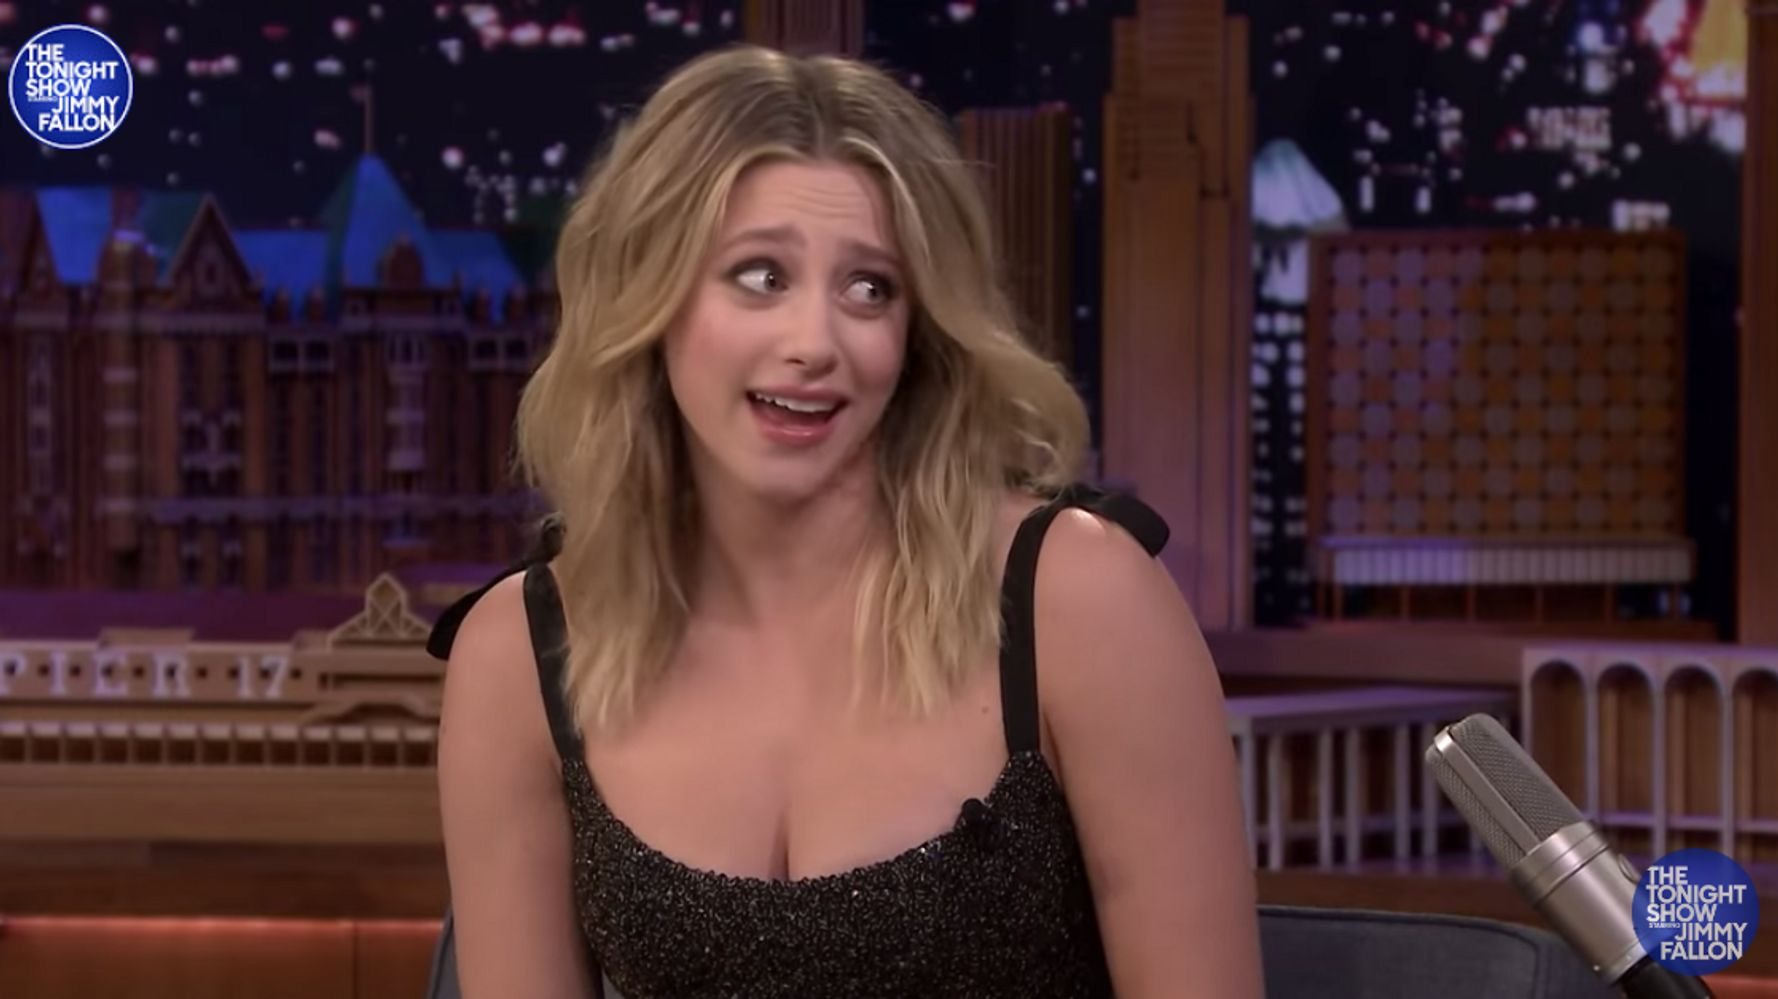 Lili Reinhart Clears Up Comments On Fallon, Says She Actually Has OCD